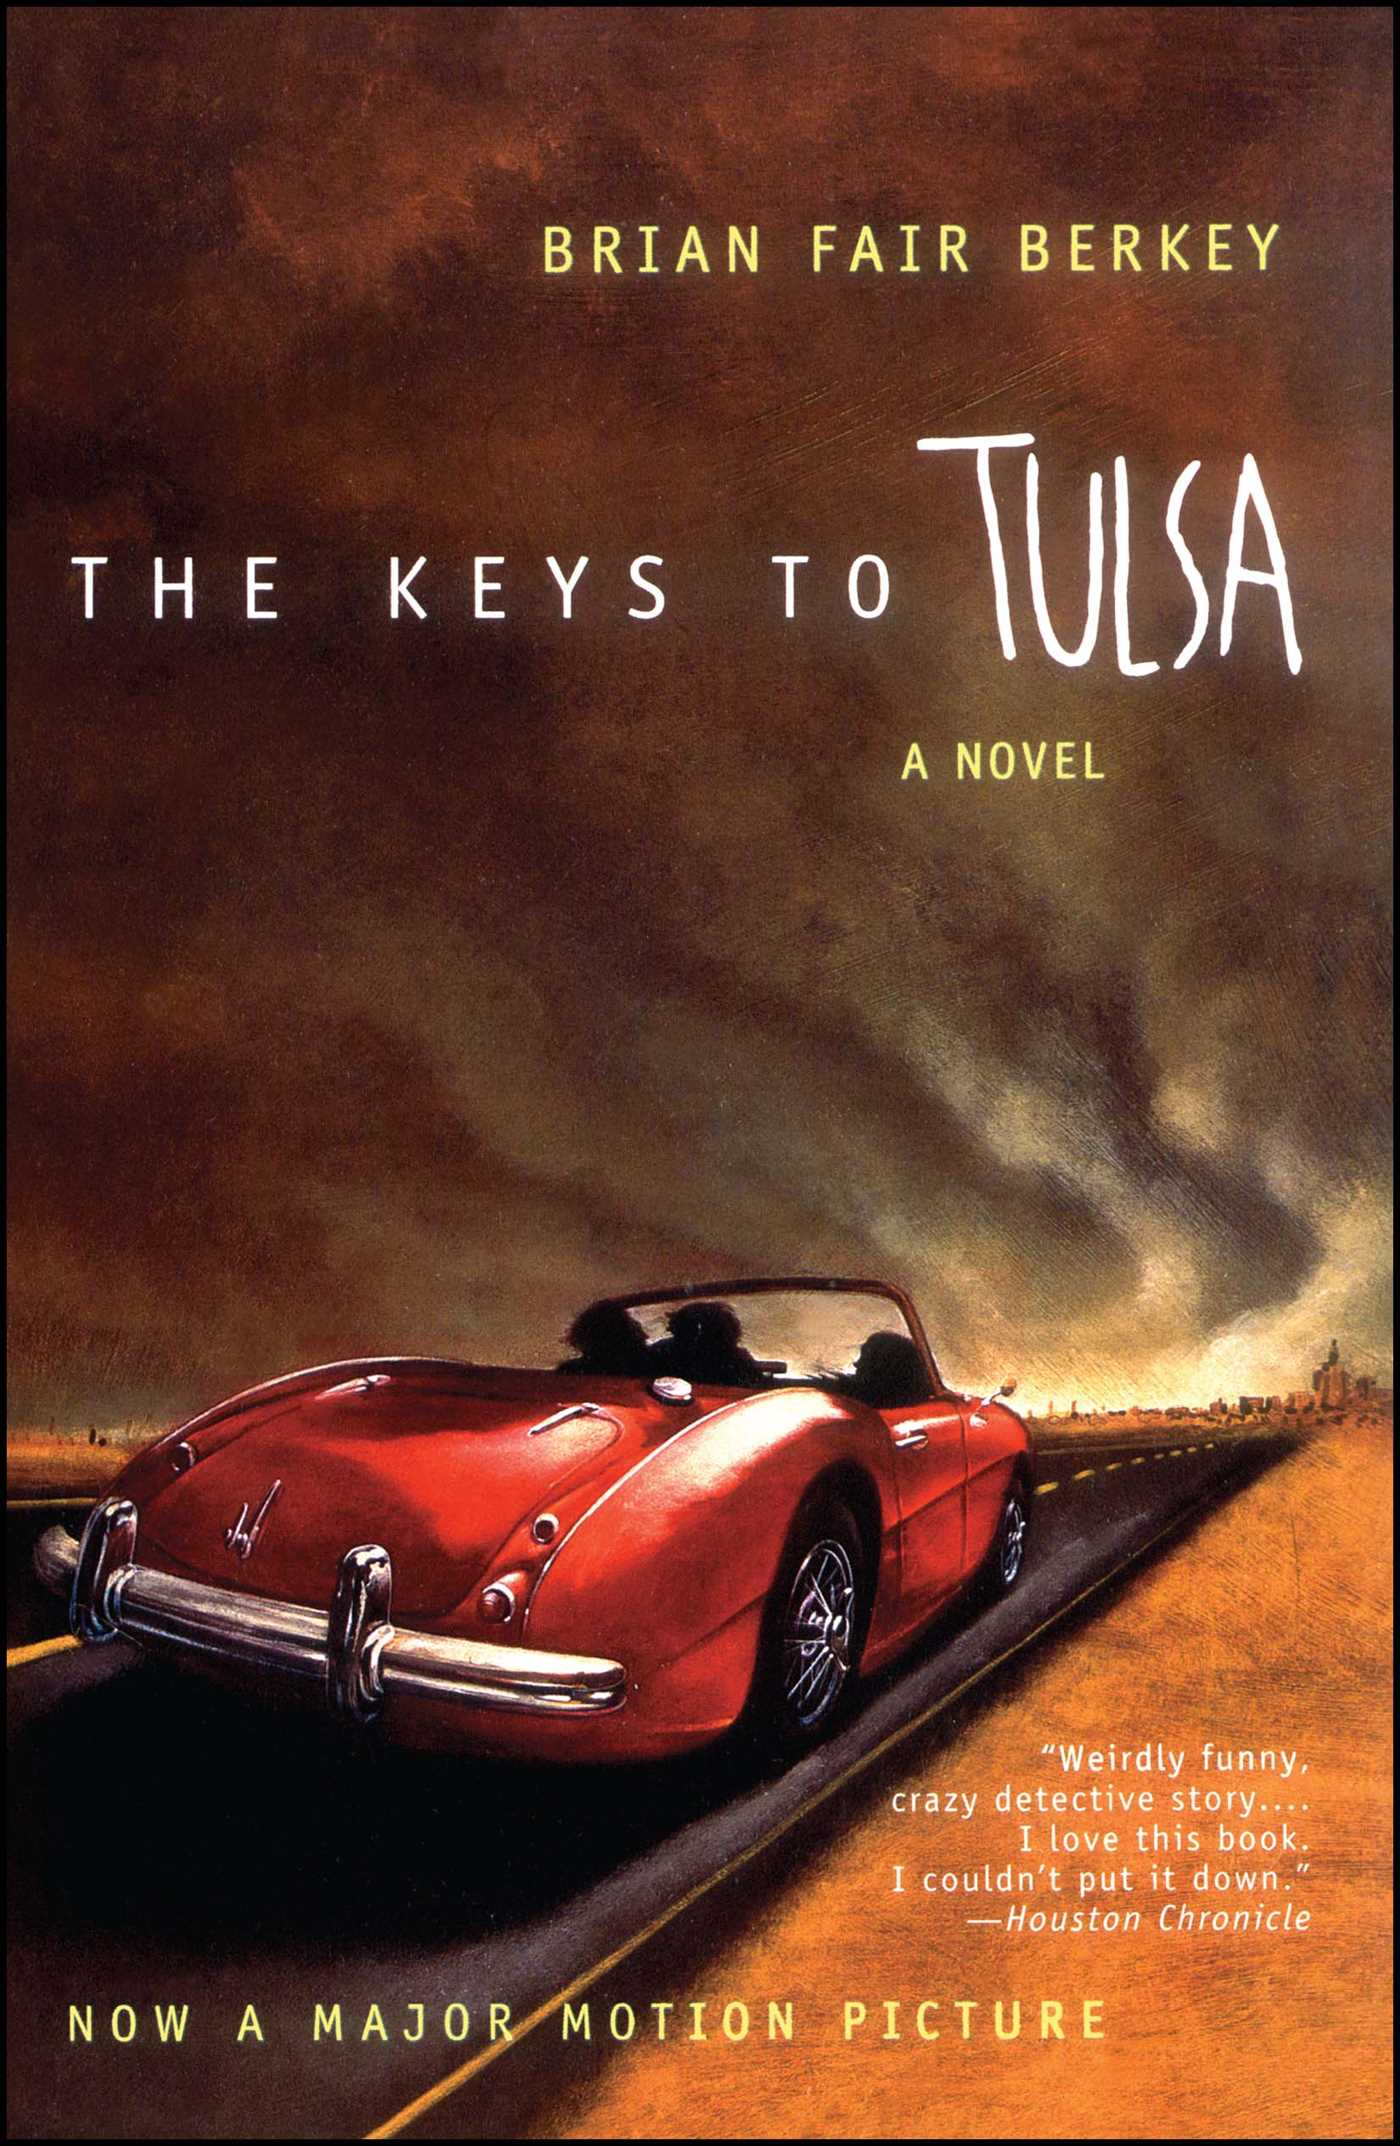 Keys to tulsa 9780671707279 hr